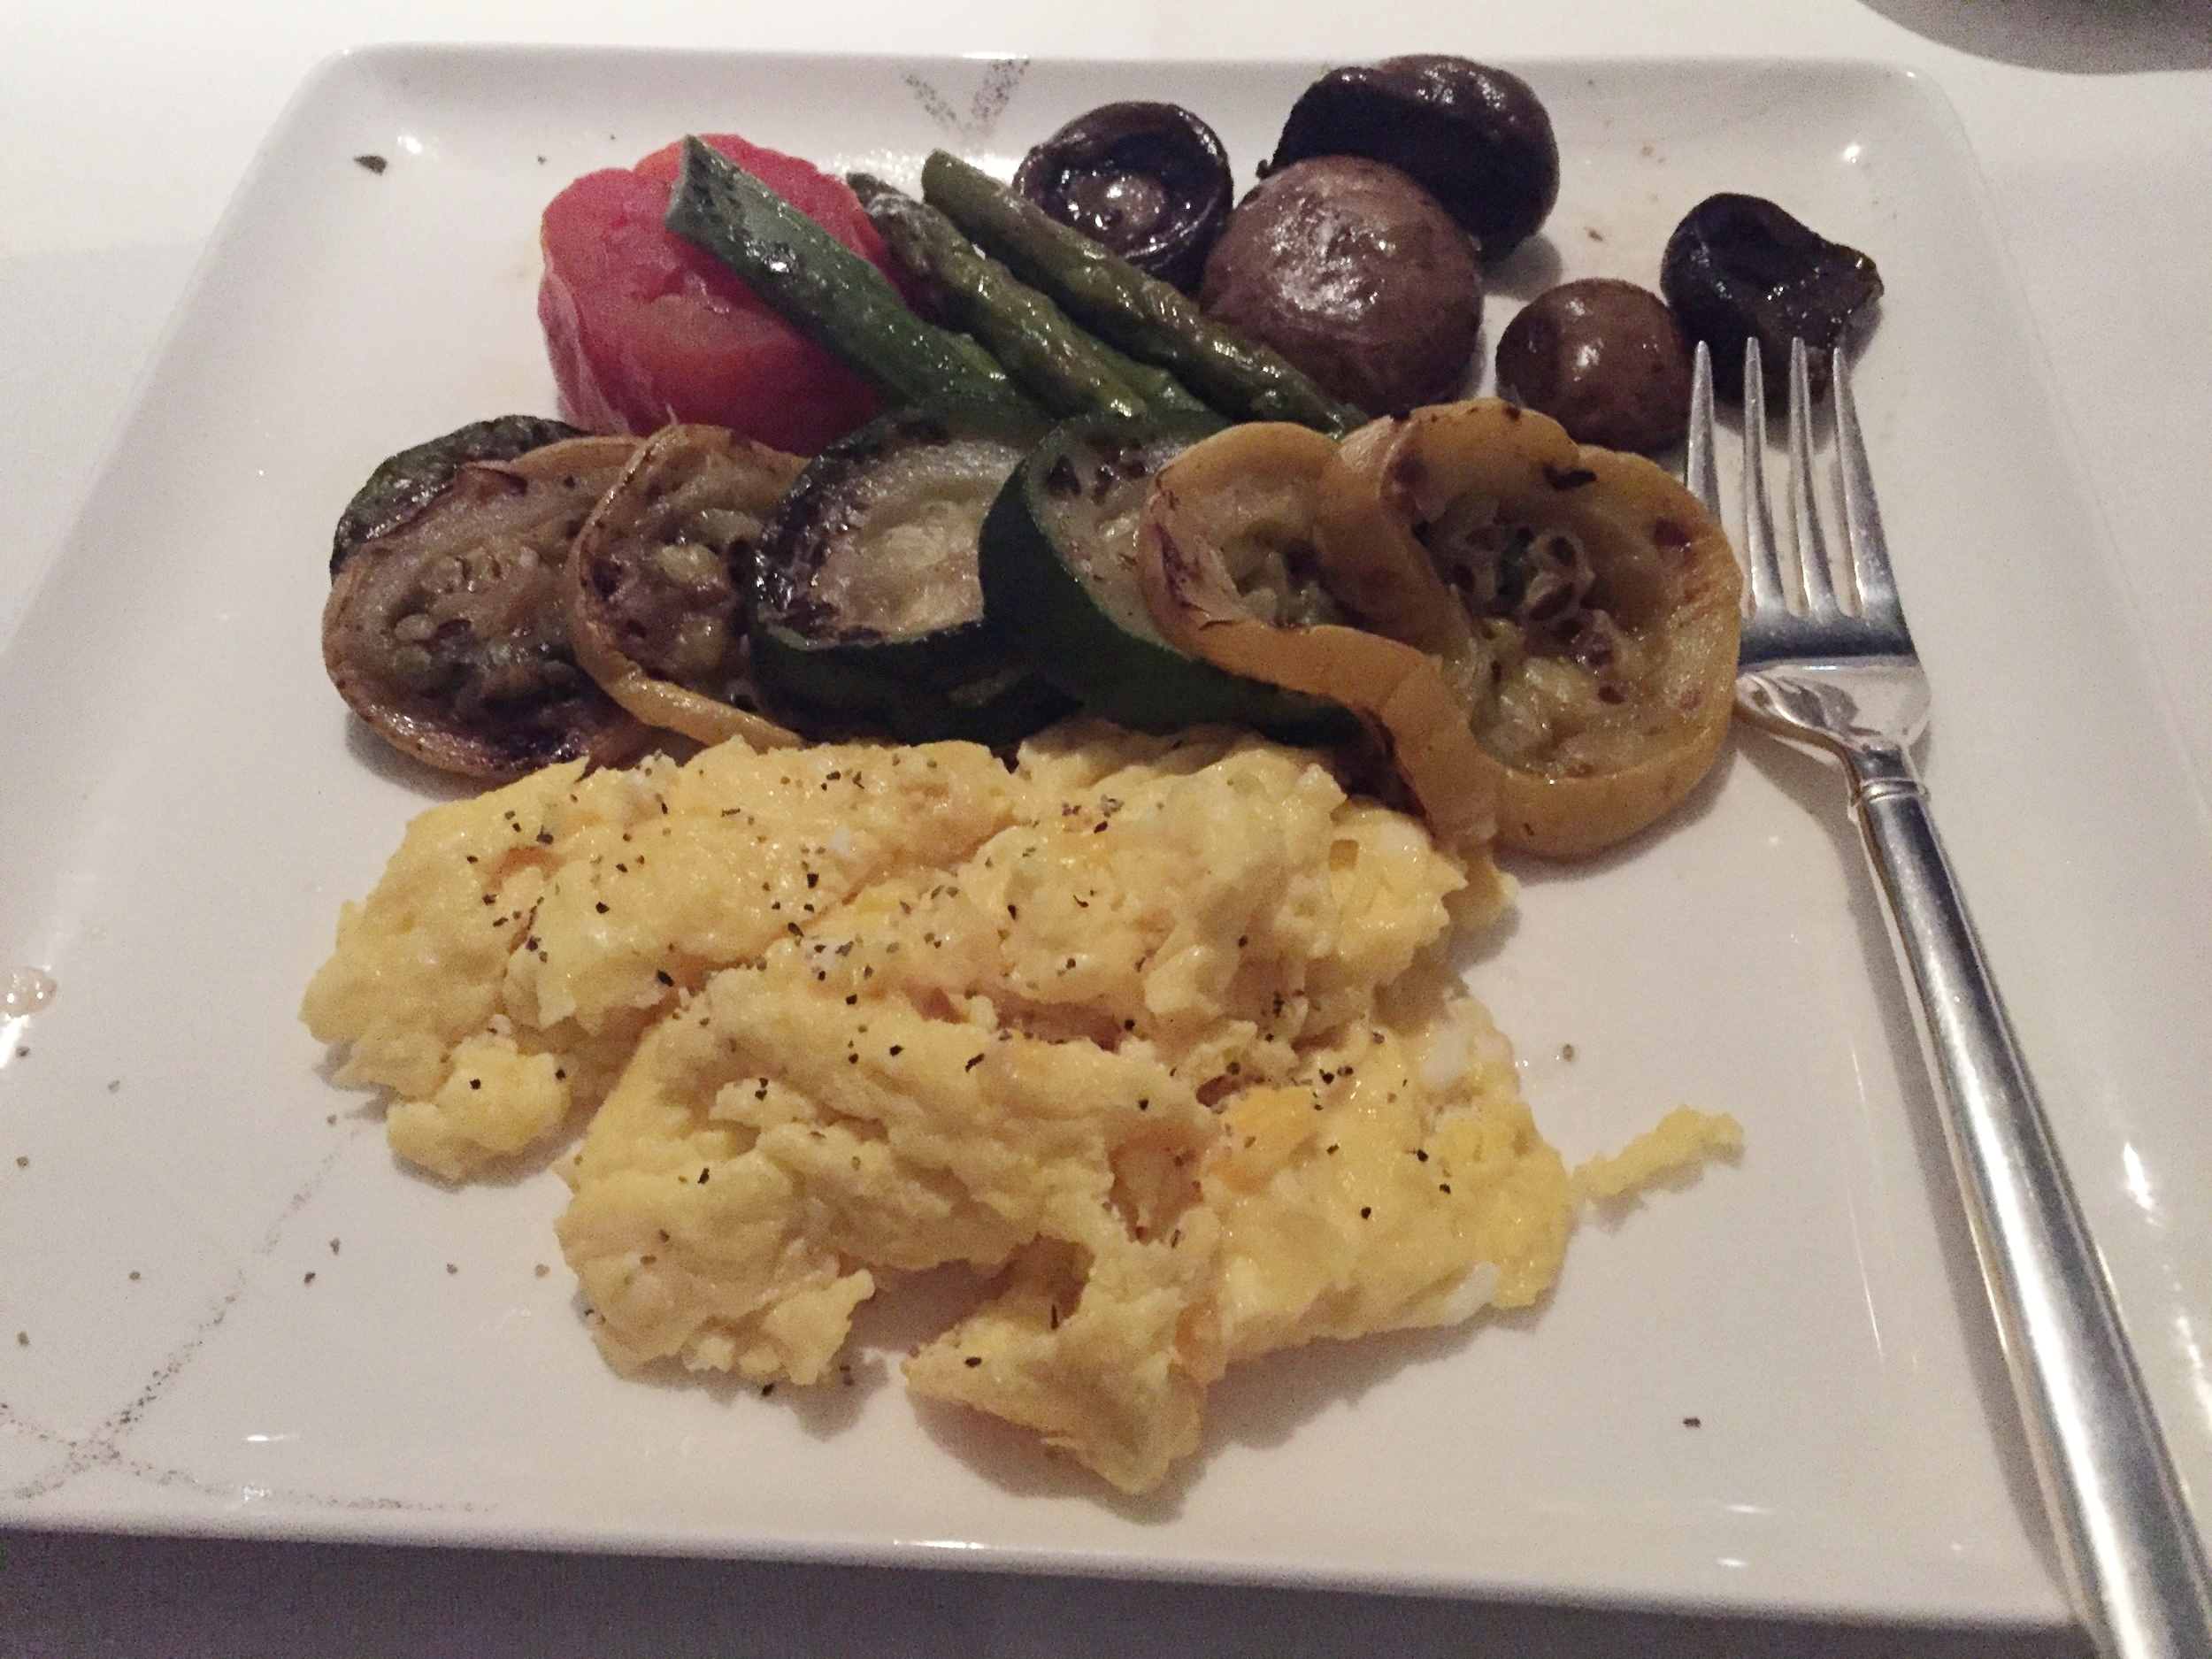 Cathay Pacific First Class scrambled eggs made-to-order